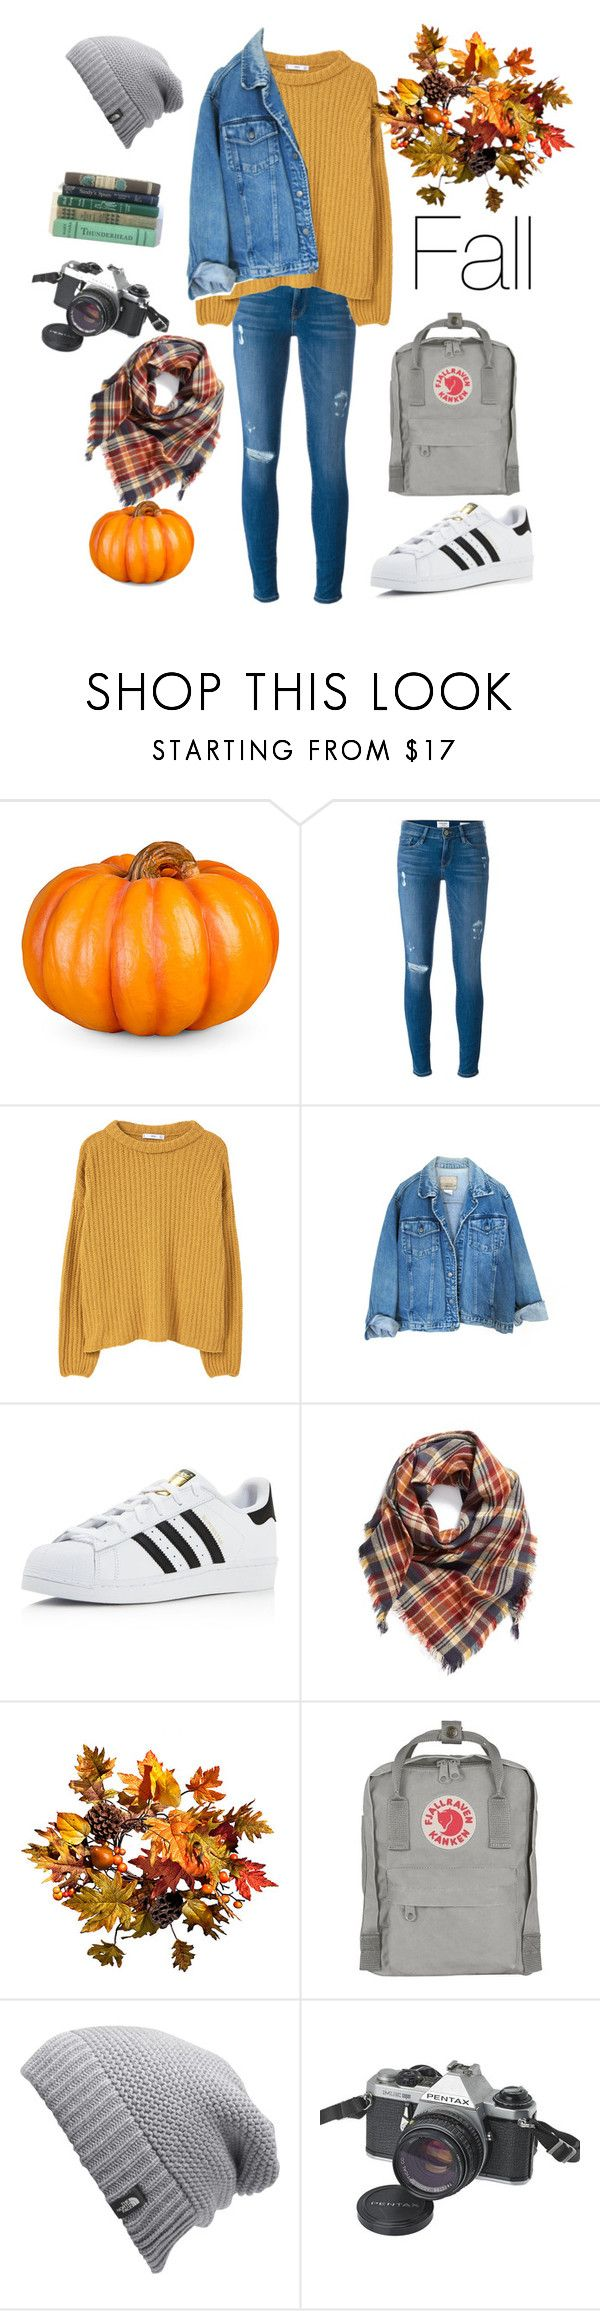 """""""Fall   #fall"""" by magdons on Polyvore featuring Improvements, Frame Denim, MANGO, adidas, BP., The North Face and Pentax"""